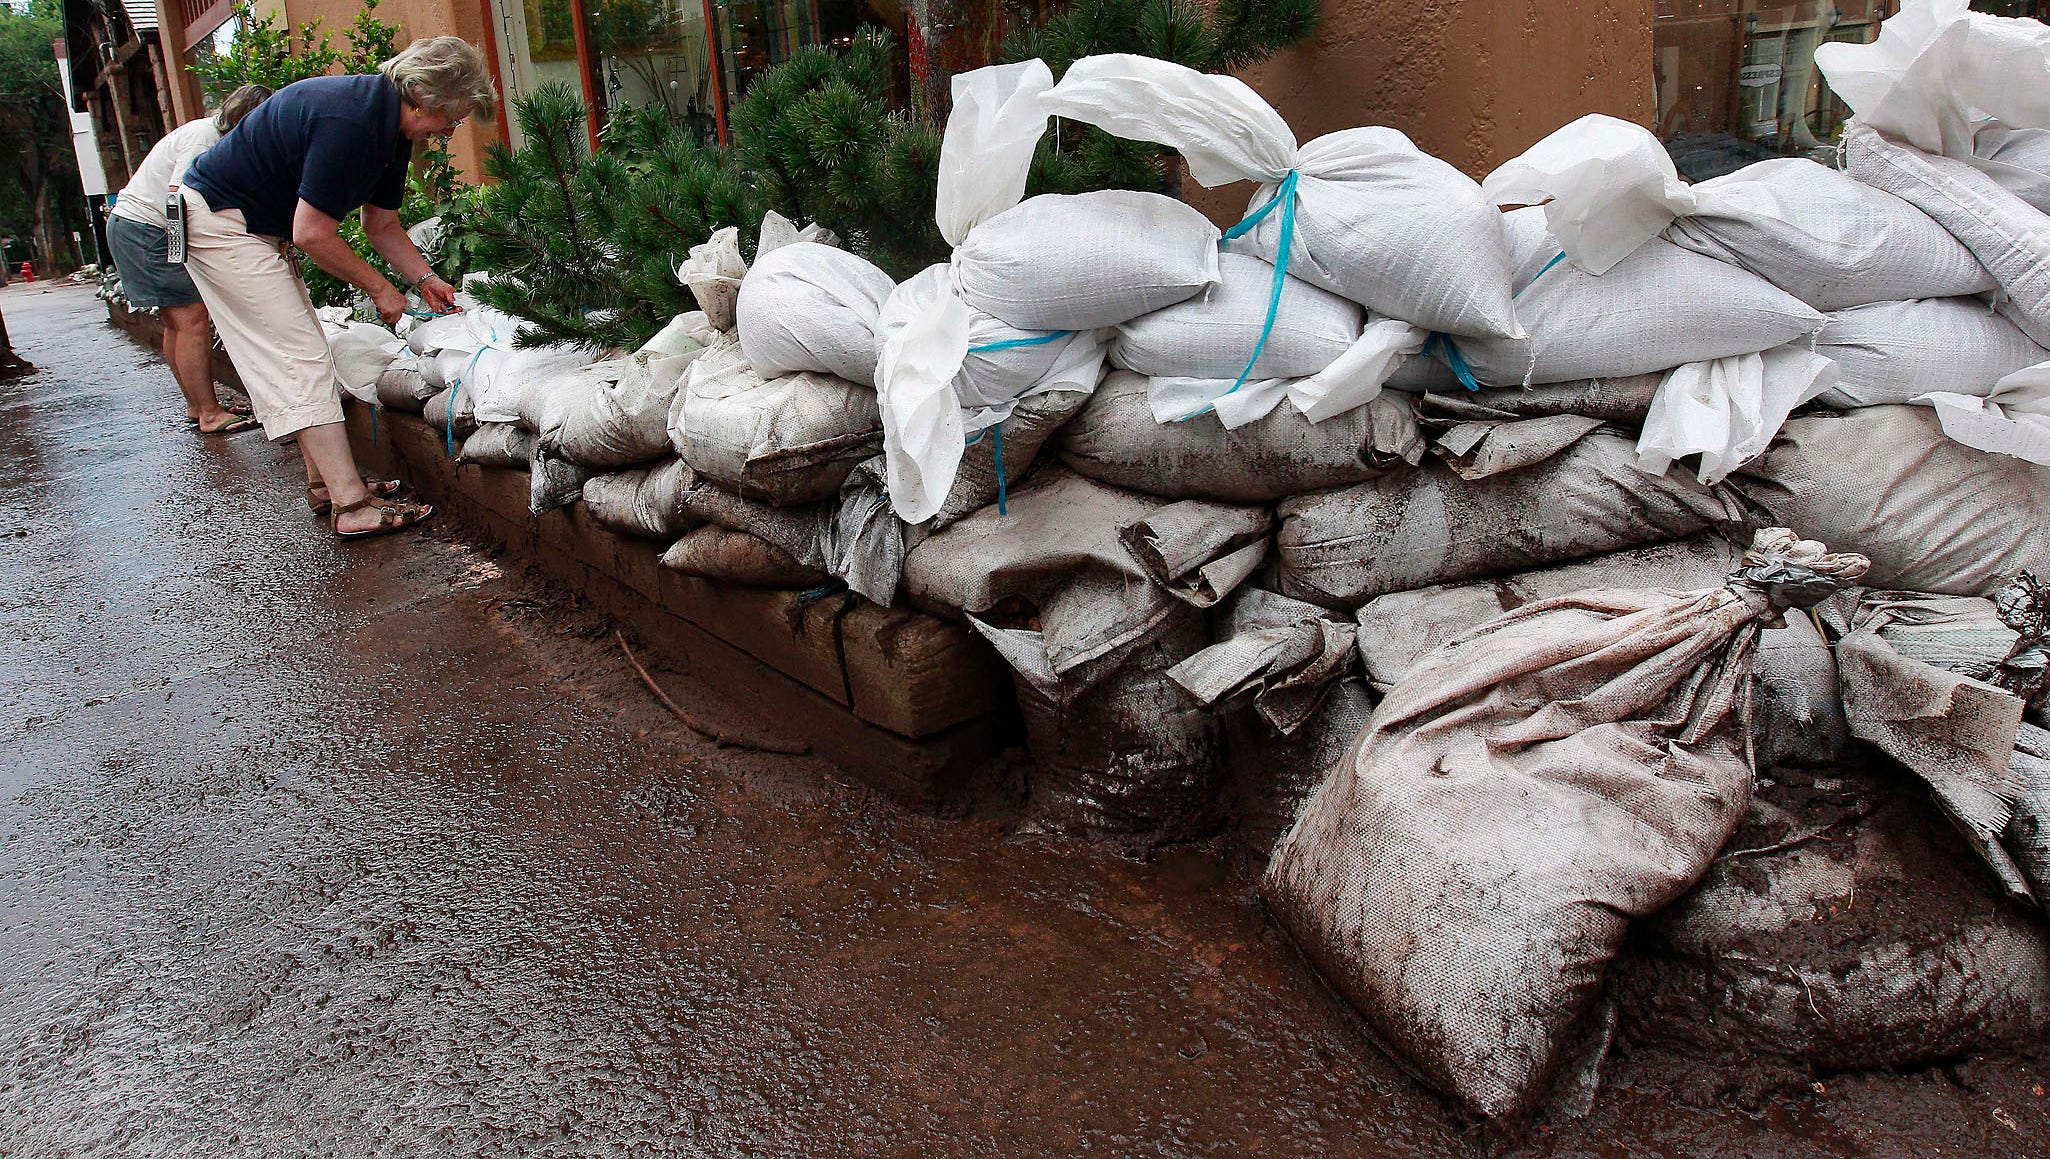 Women sandbag a shop Aug. 12 after a flash flood in Manitou Springs, Colo. A mudslide and flash flood struck the town on Aug. 9 after 1.3 inches of rain fell in an area burned by last year's Waldo Canyon Fire.